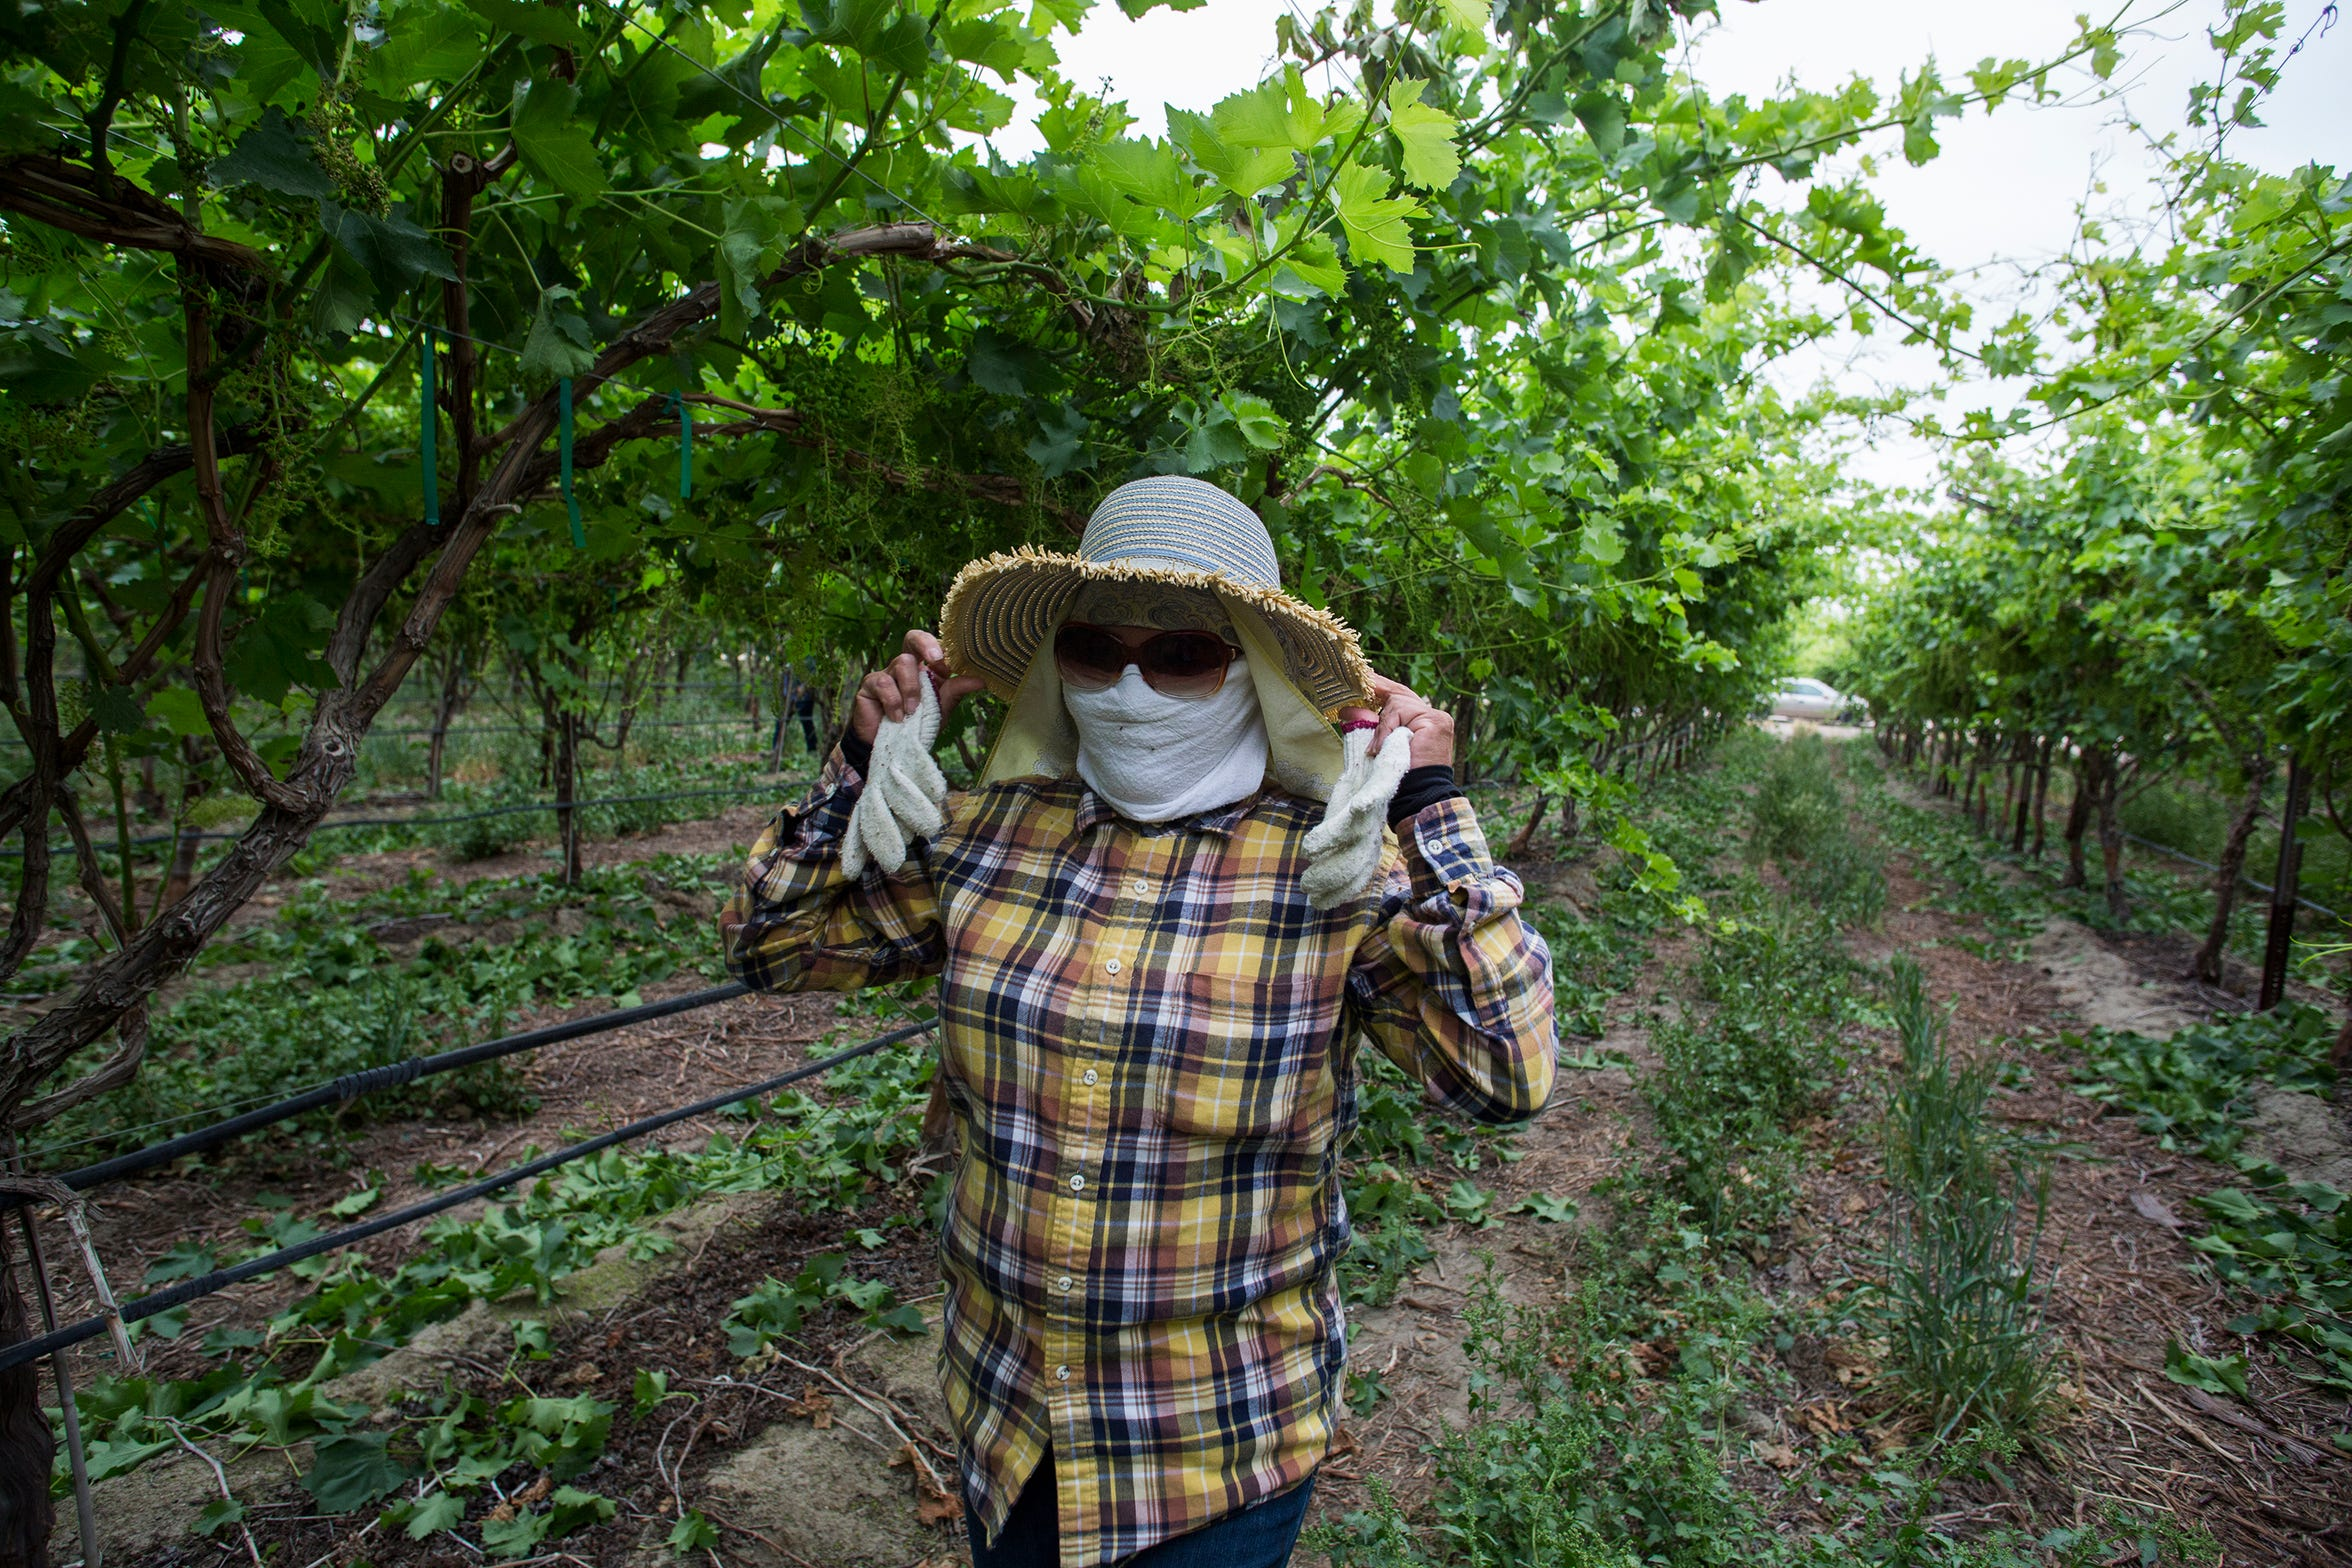 Field supervisor Enriqueta Magaña has worked in the Coachella Valley's grape vineyards for two decades and at the Coachella festival for 10 years.